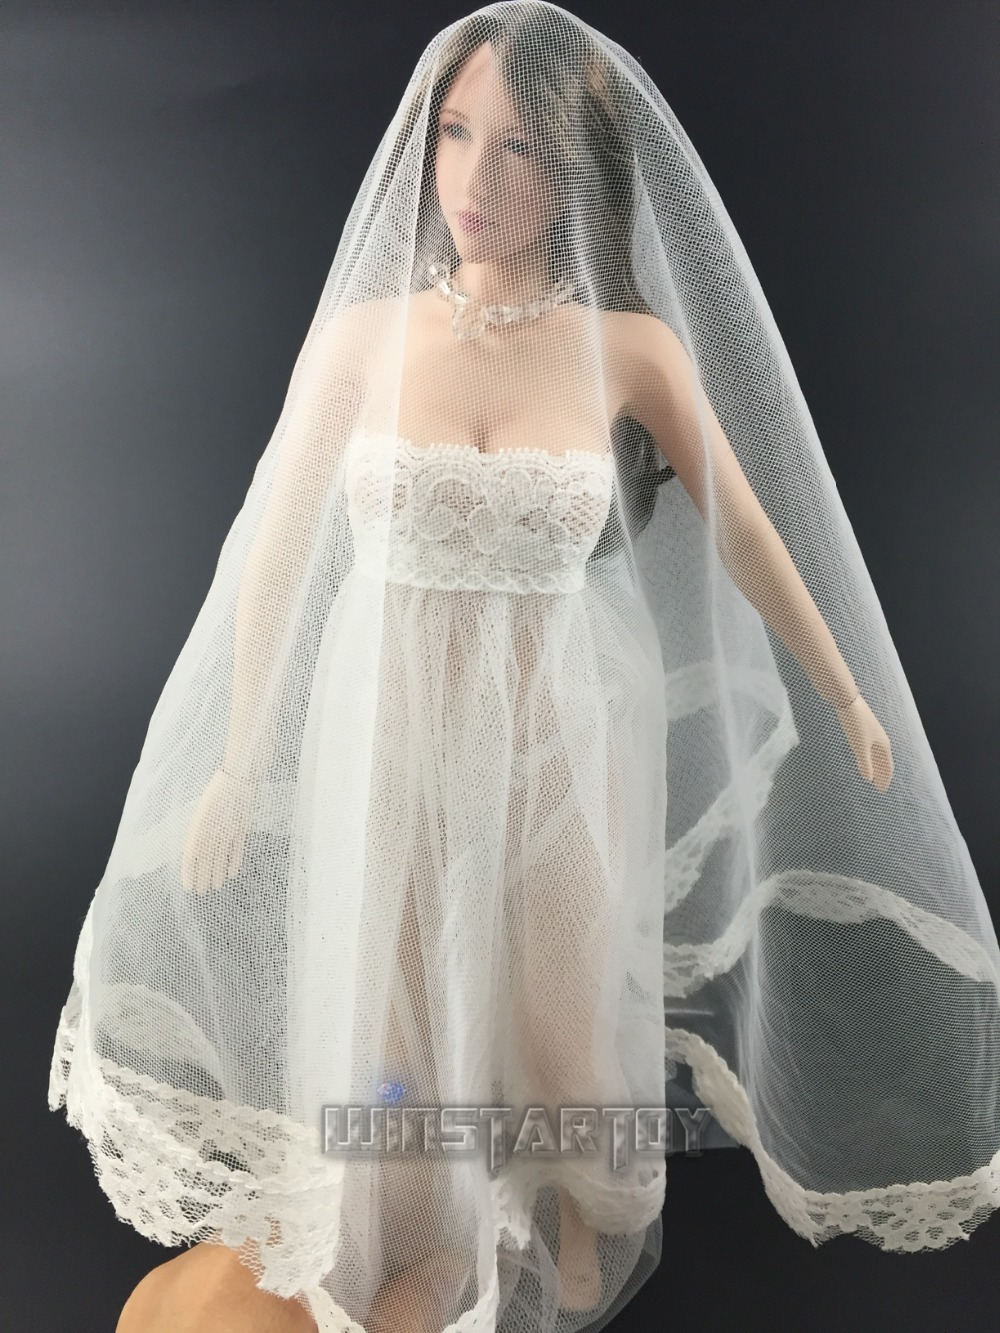 Estartek full hand made 1 6 Sexy lace wedding dress for Phicen Hot stuff  Jodoll OB action figure DIY-in Action   Toy Figures from Toys   Hobbies on  ... a246dec15148